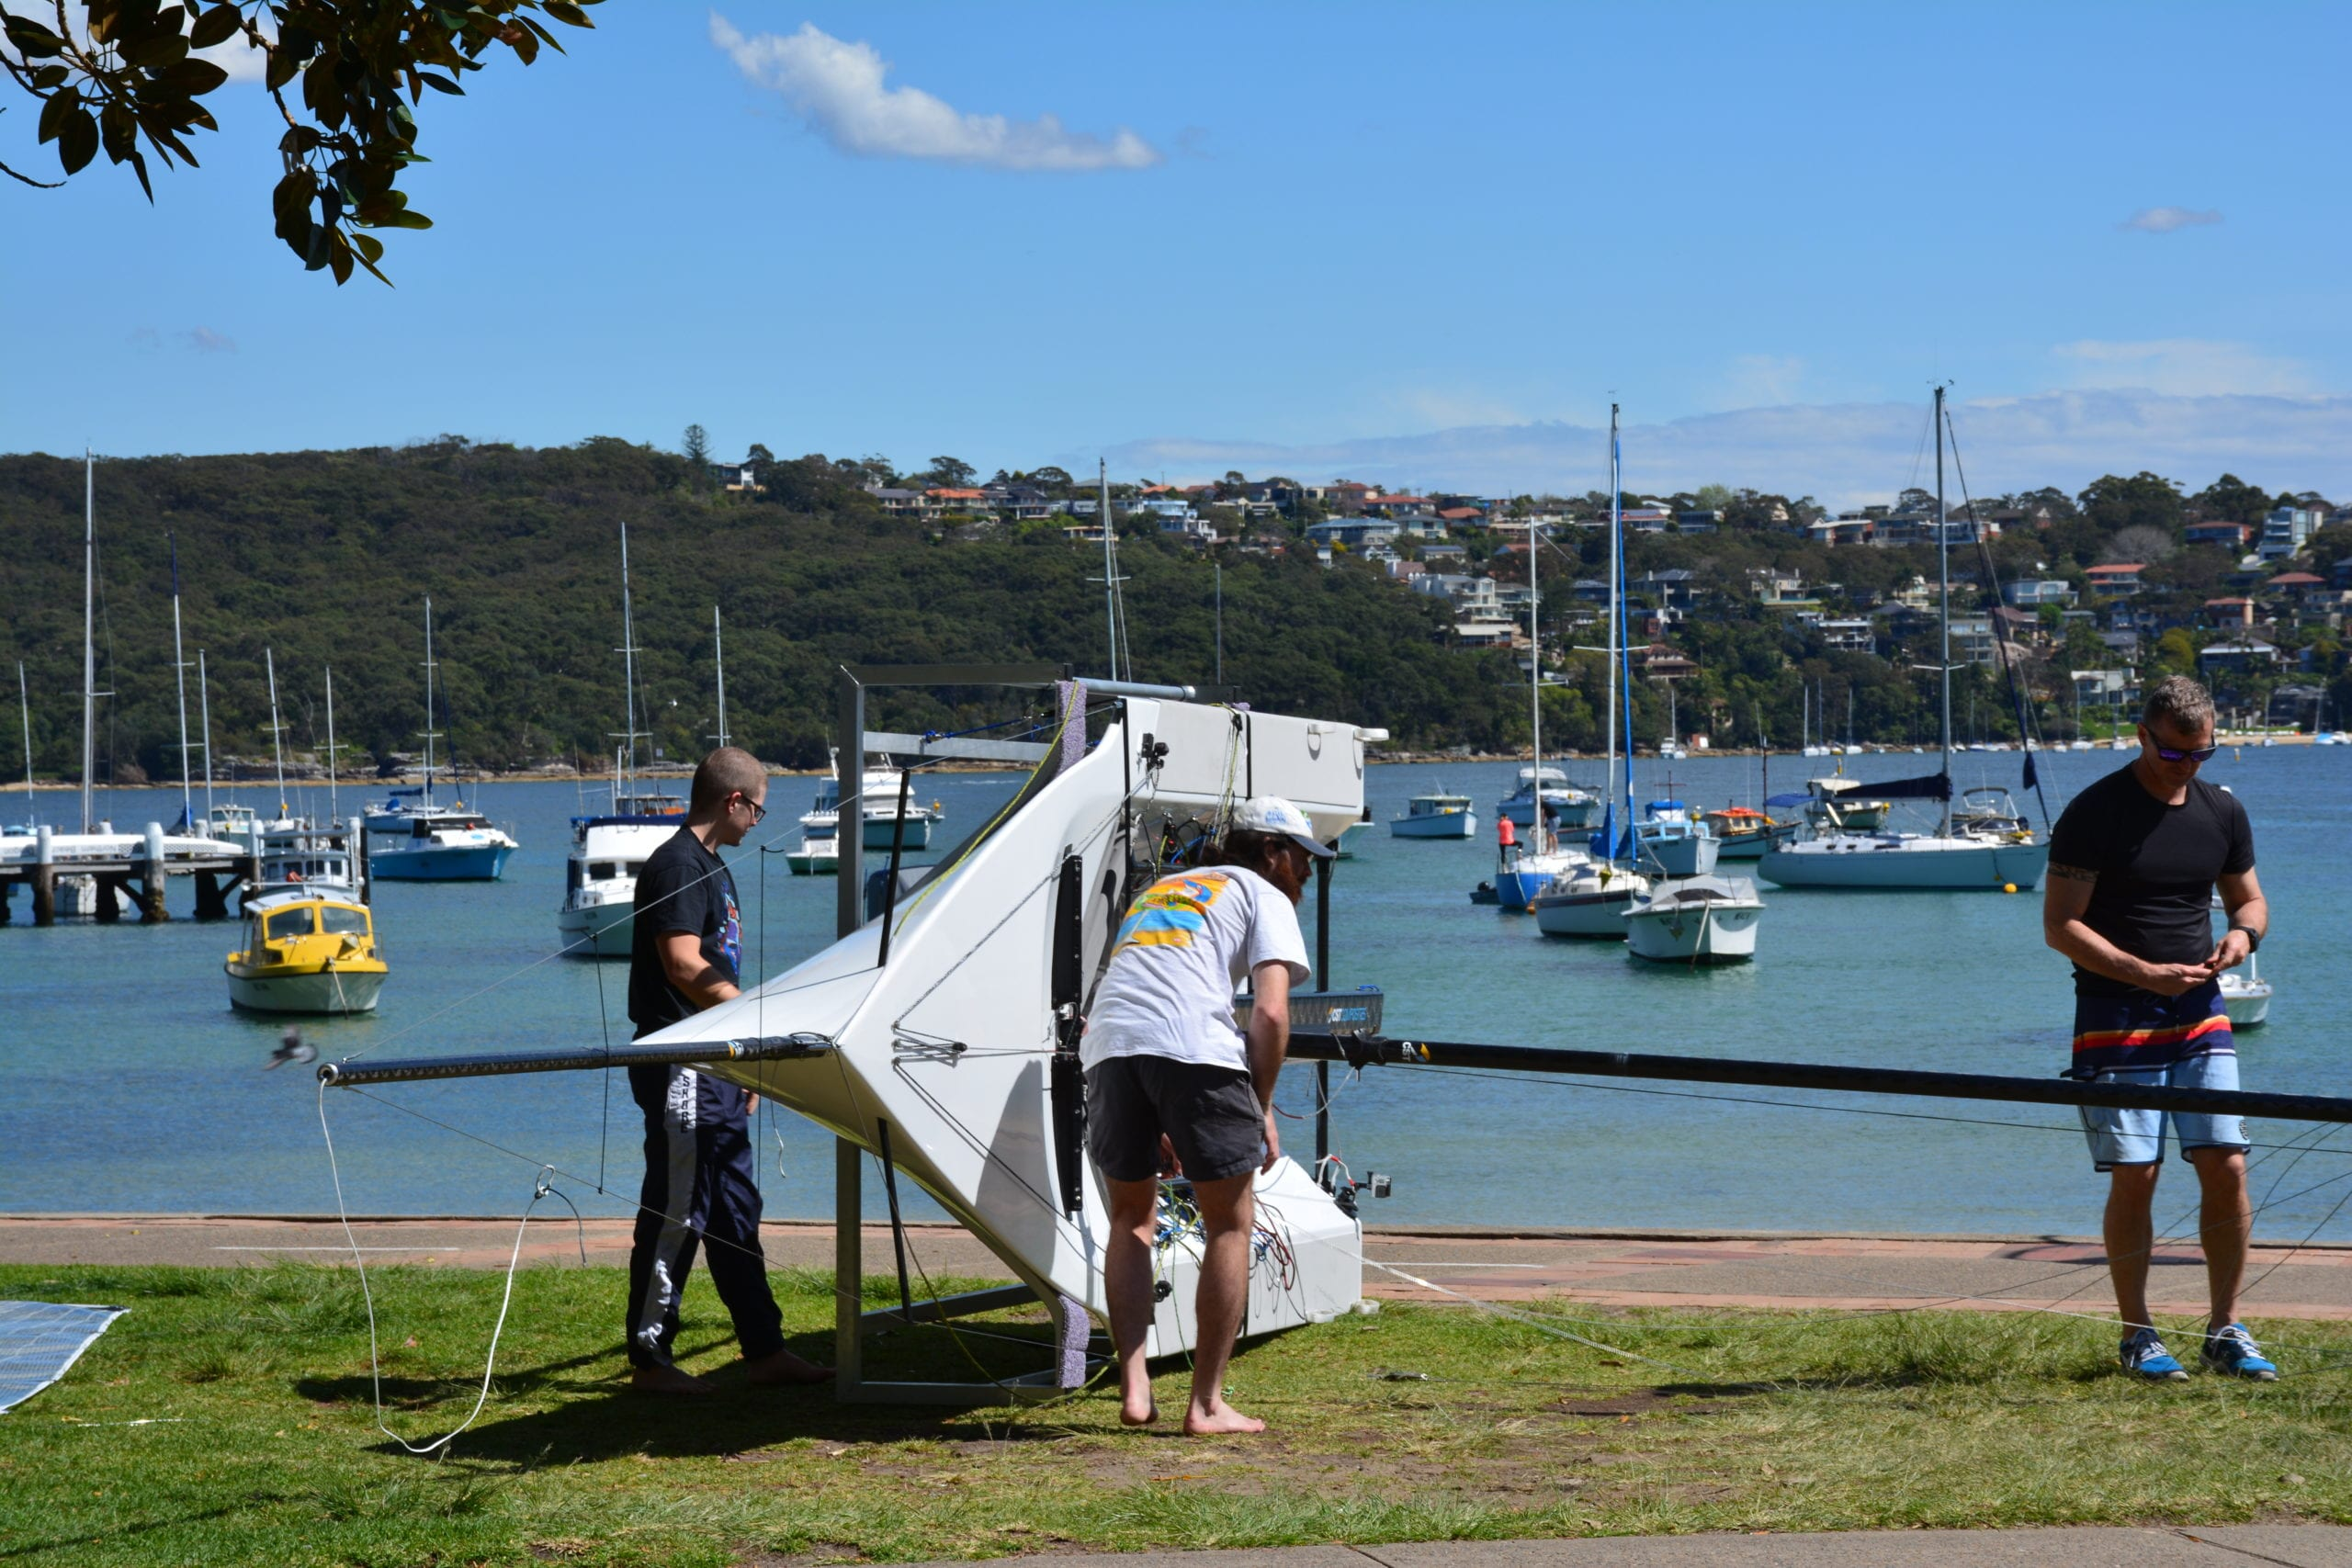 The sailors from Red Square Sailing Team getting their new boat ready in Manly.